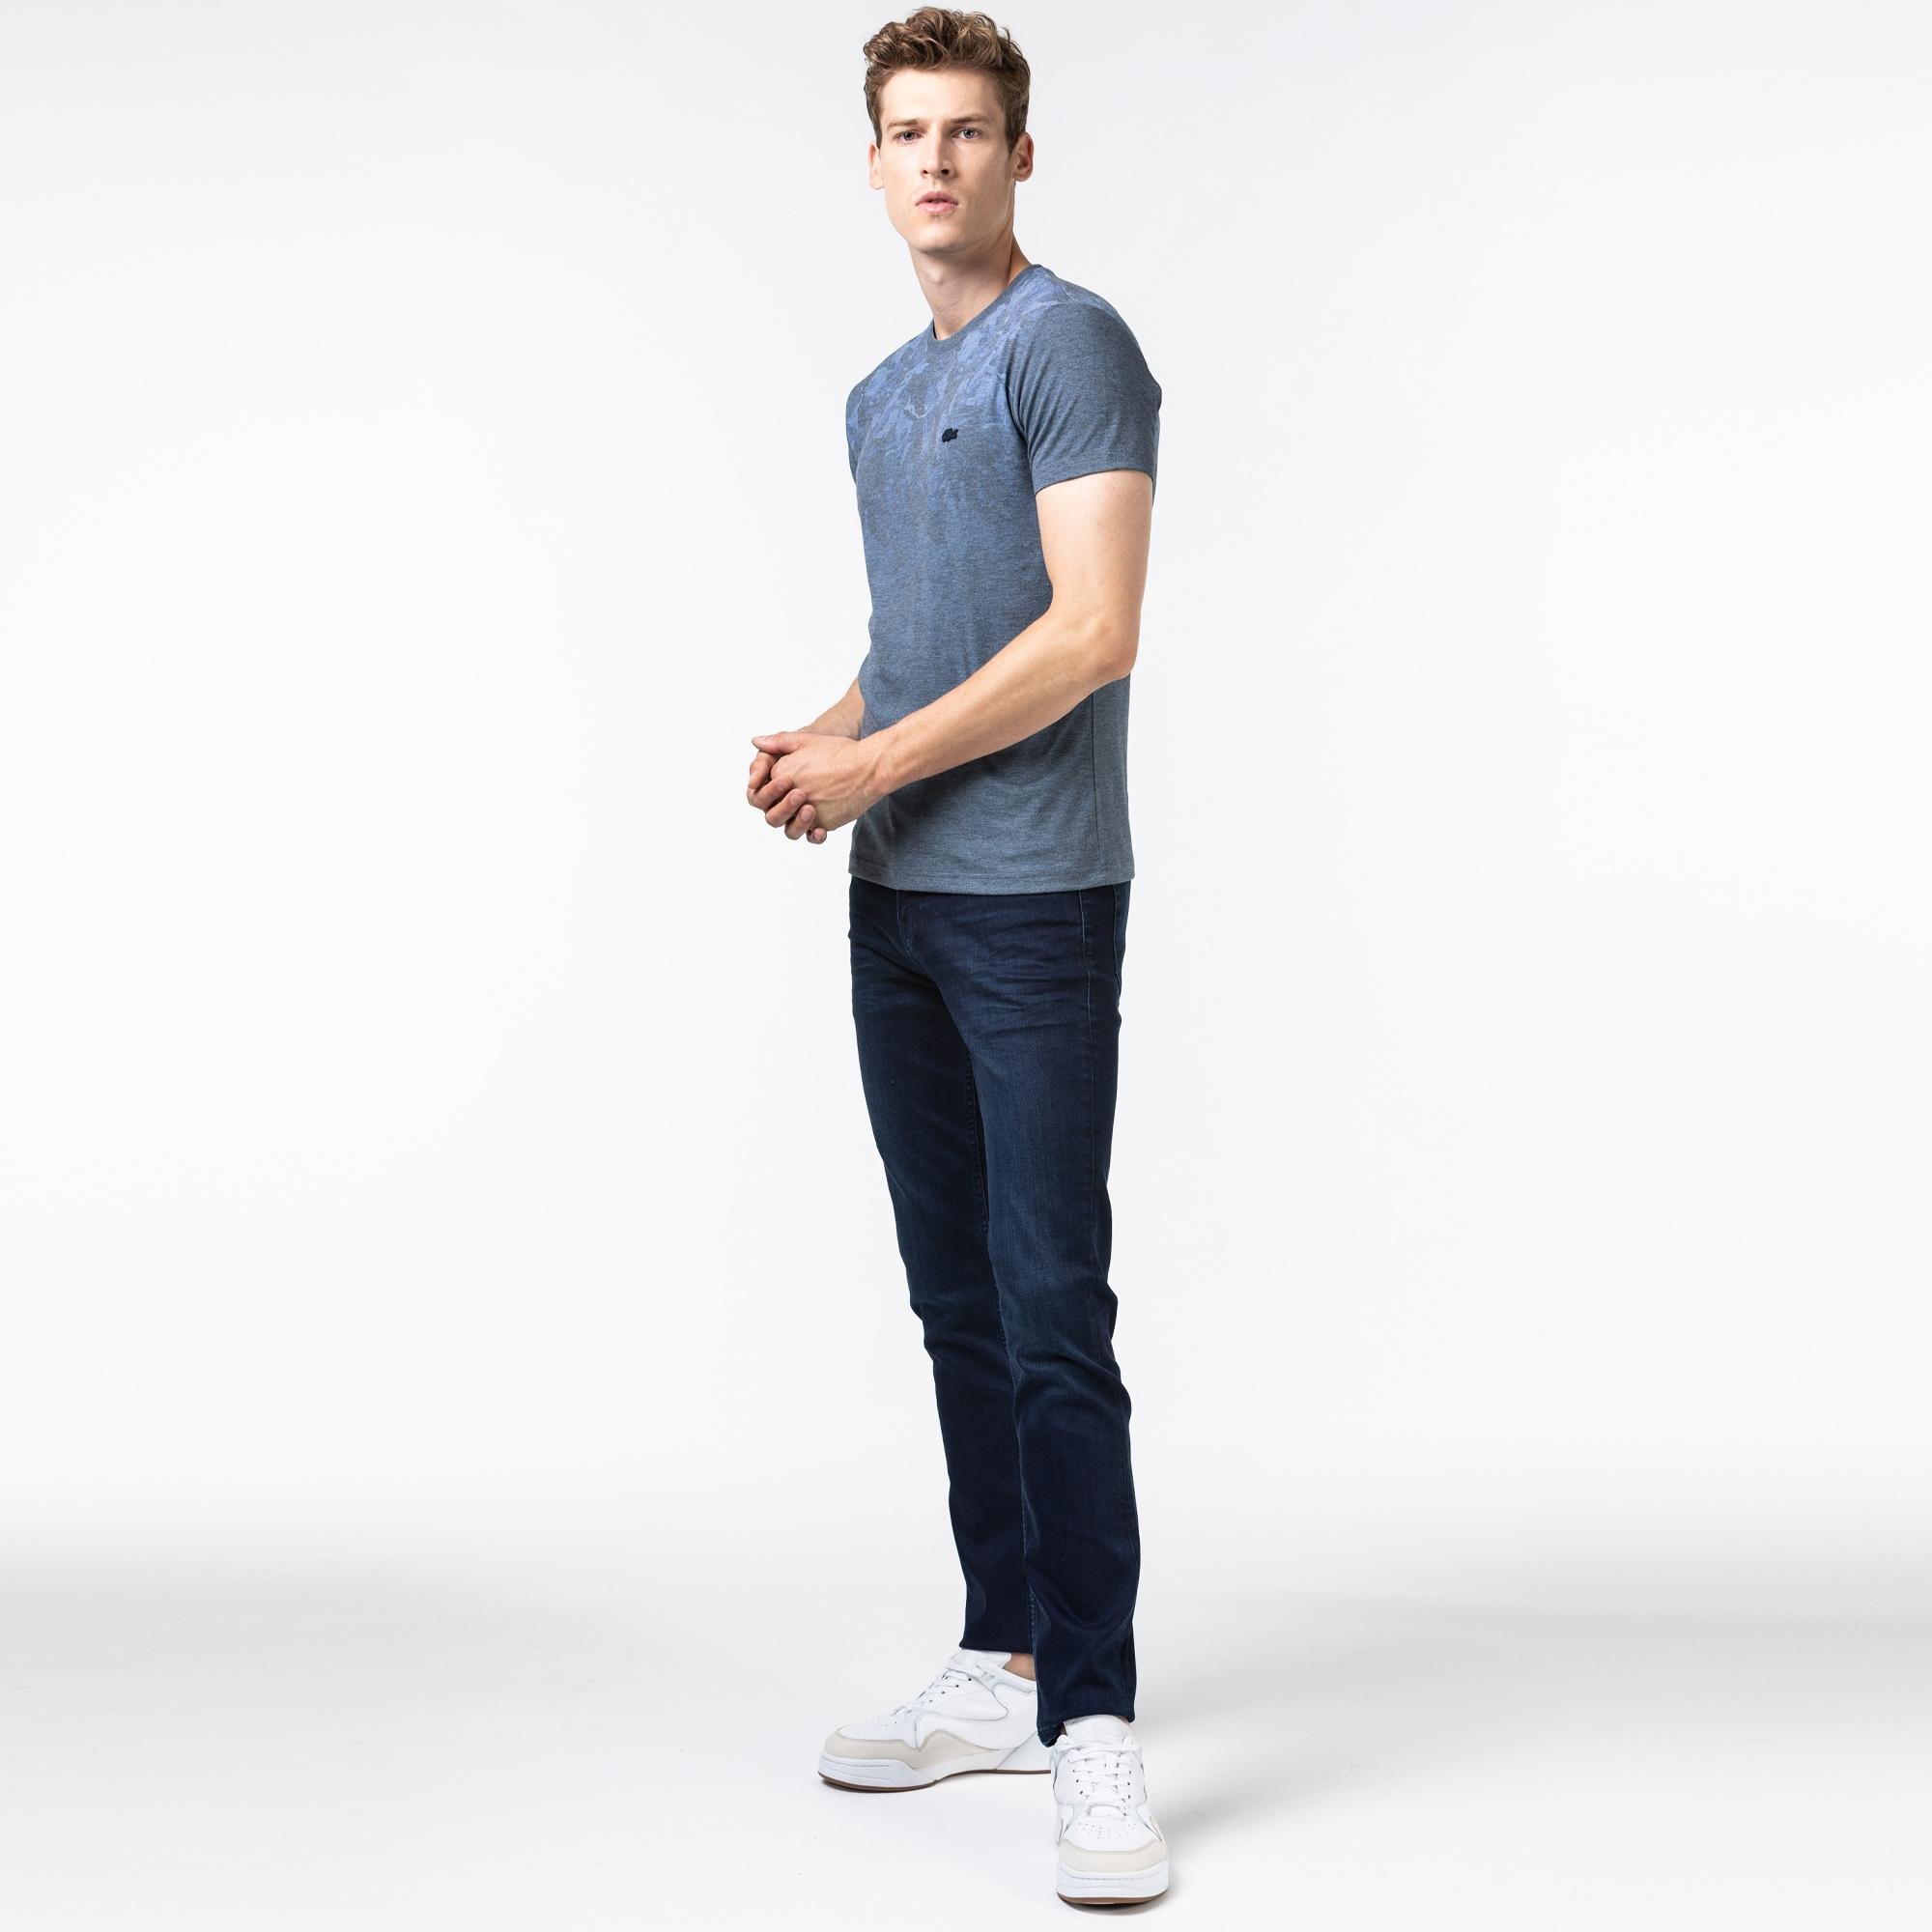 Lacoste Erkek Slim Fit Lacivert Denim Pantolon